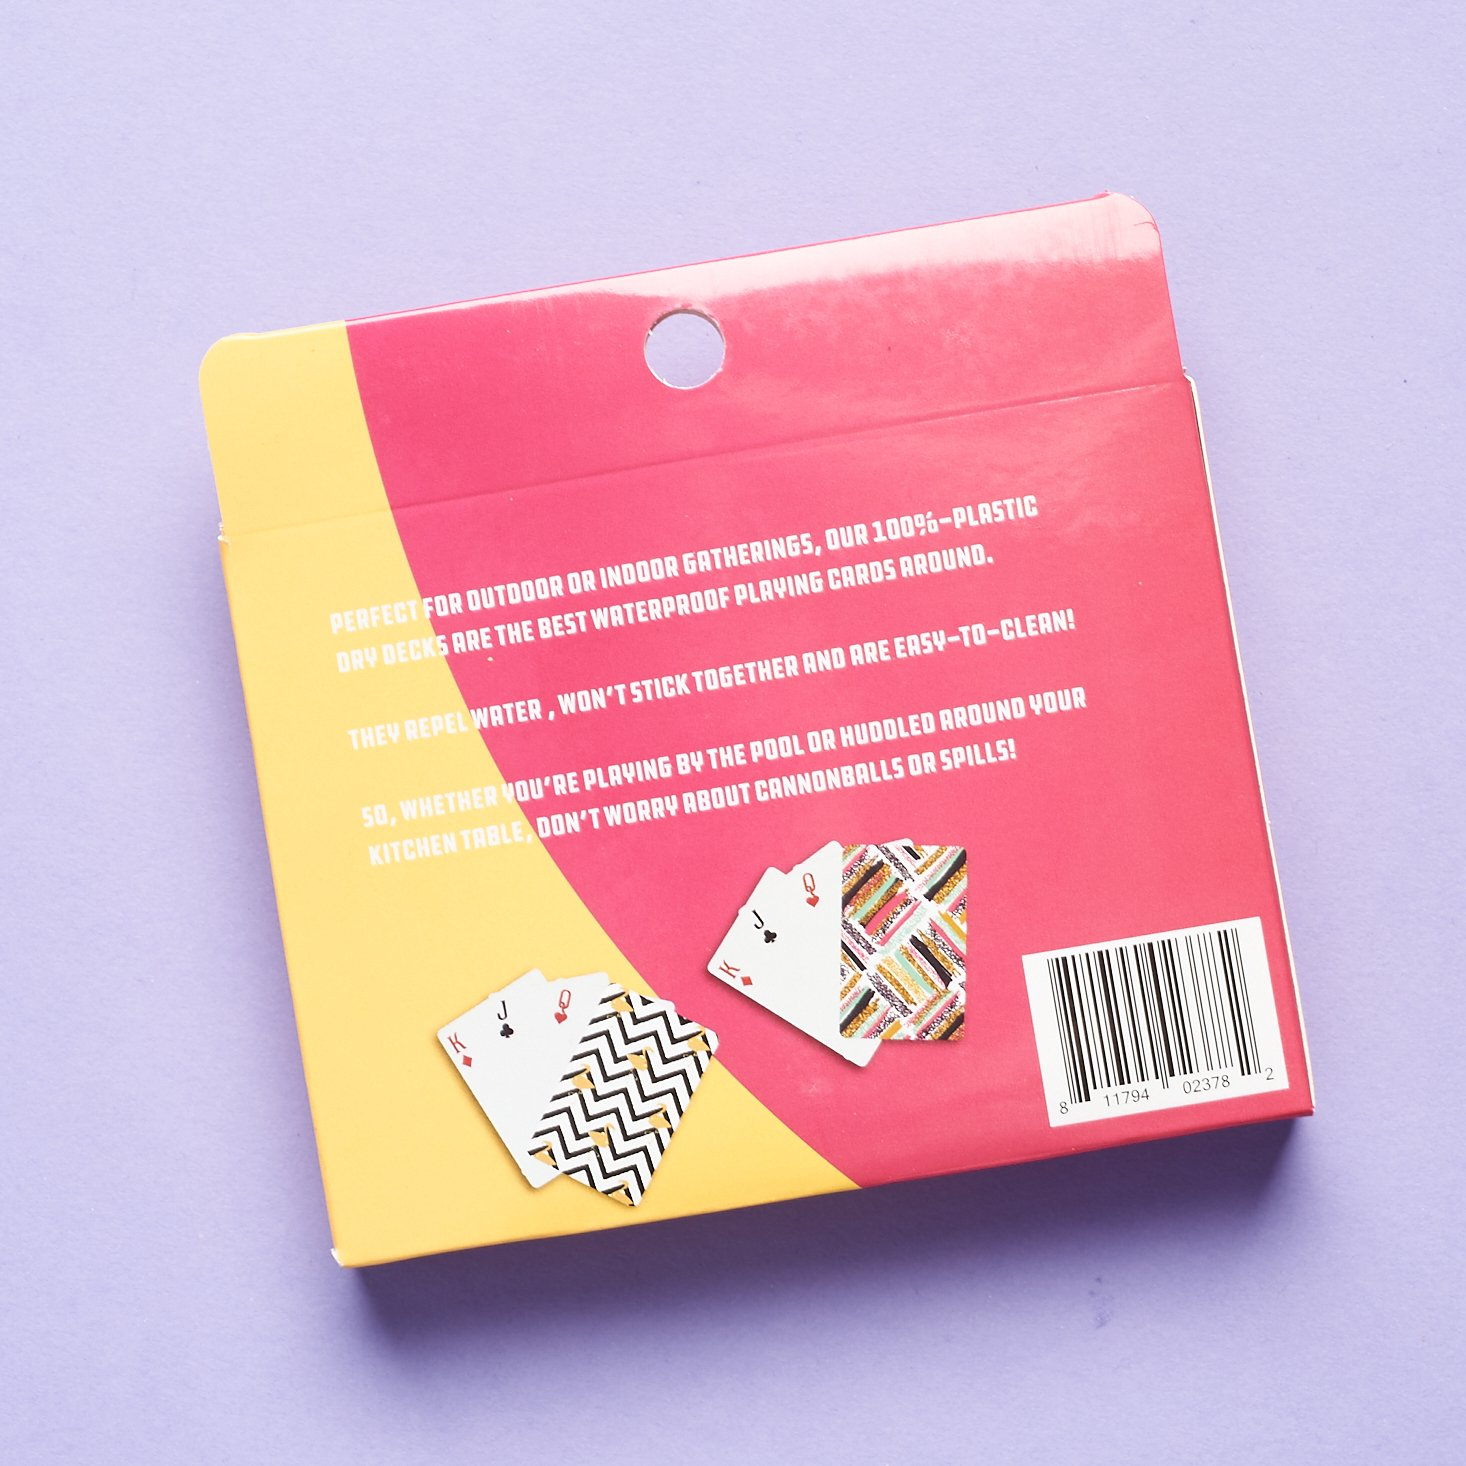 Back of Nod Products Waterproof Playing Cards for Bombay and Cedar Lifestyle Box July 2021